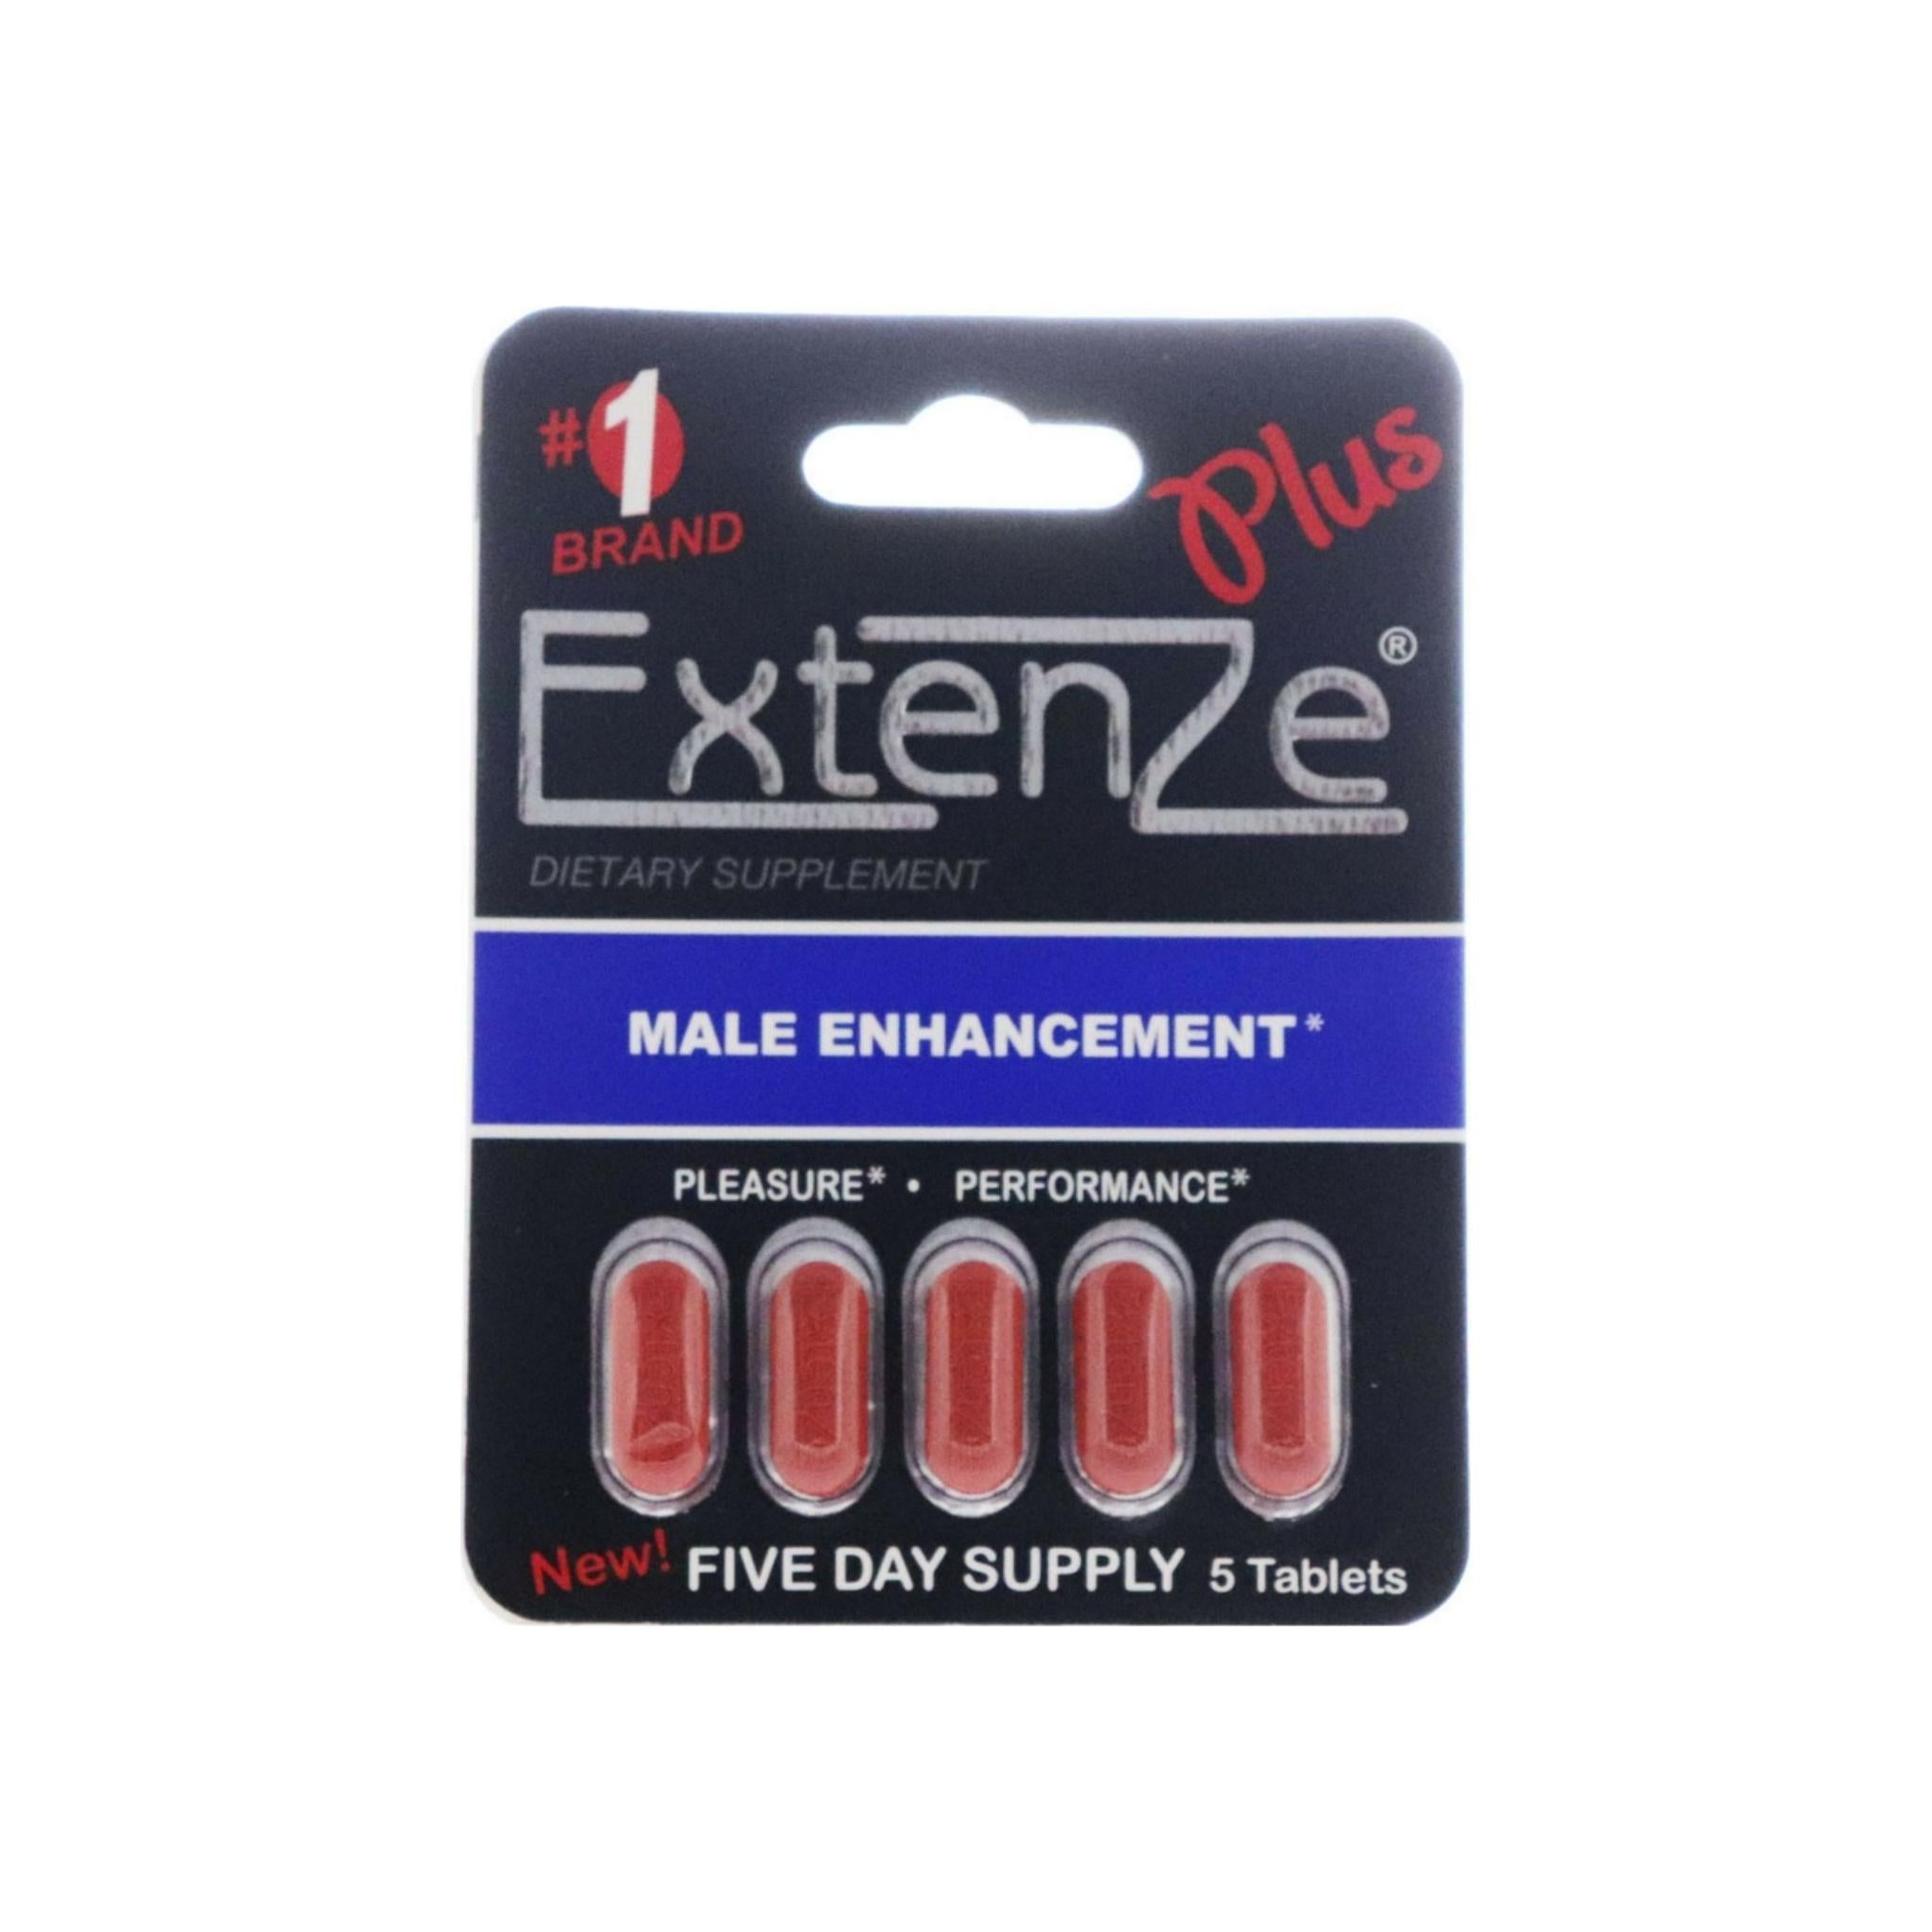 What Is The Difference Between Liquud Extenze And The Pill Formula